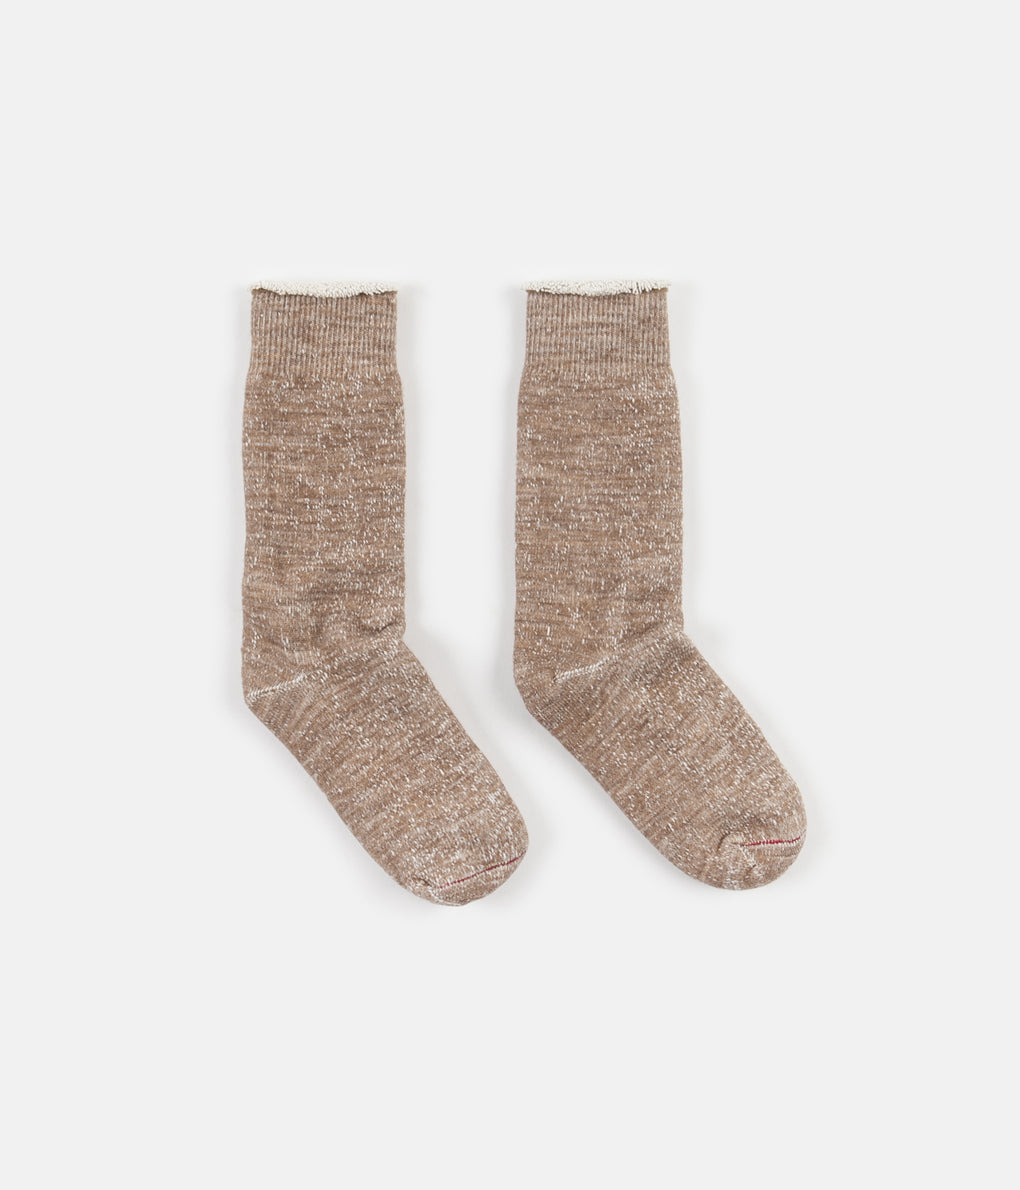 RoToTo Double Face Merino Blend Socks - Camel